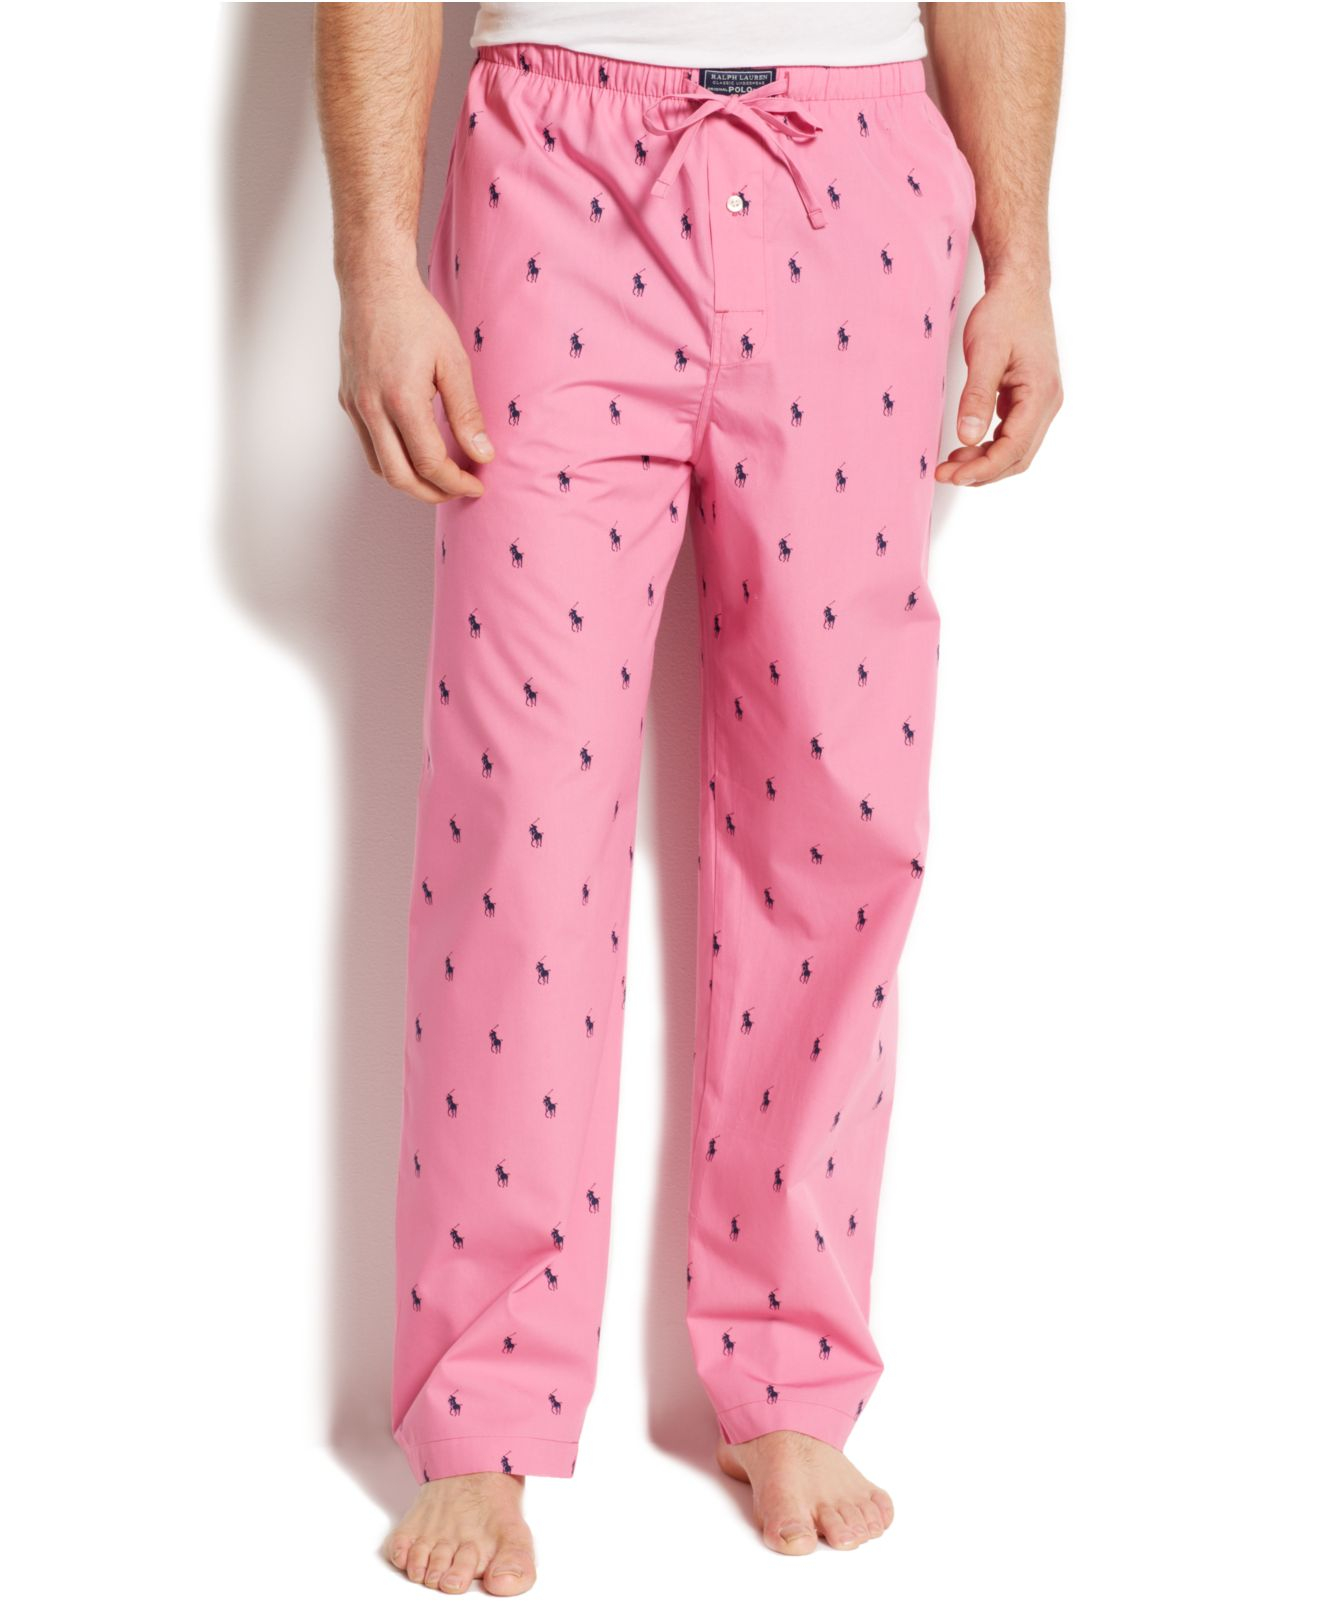 Polo ralph lauren Allover Pony Pajama Pants in Pink for ...